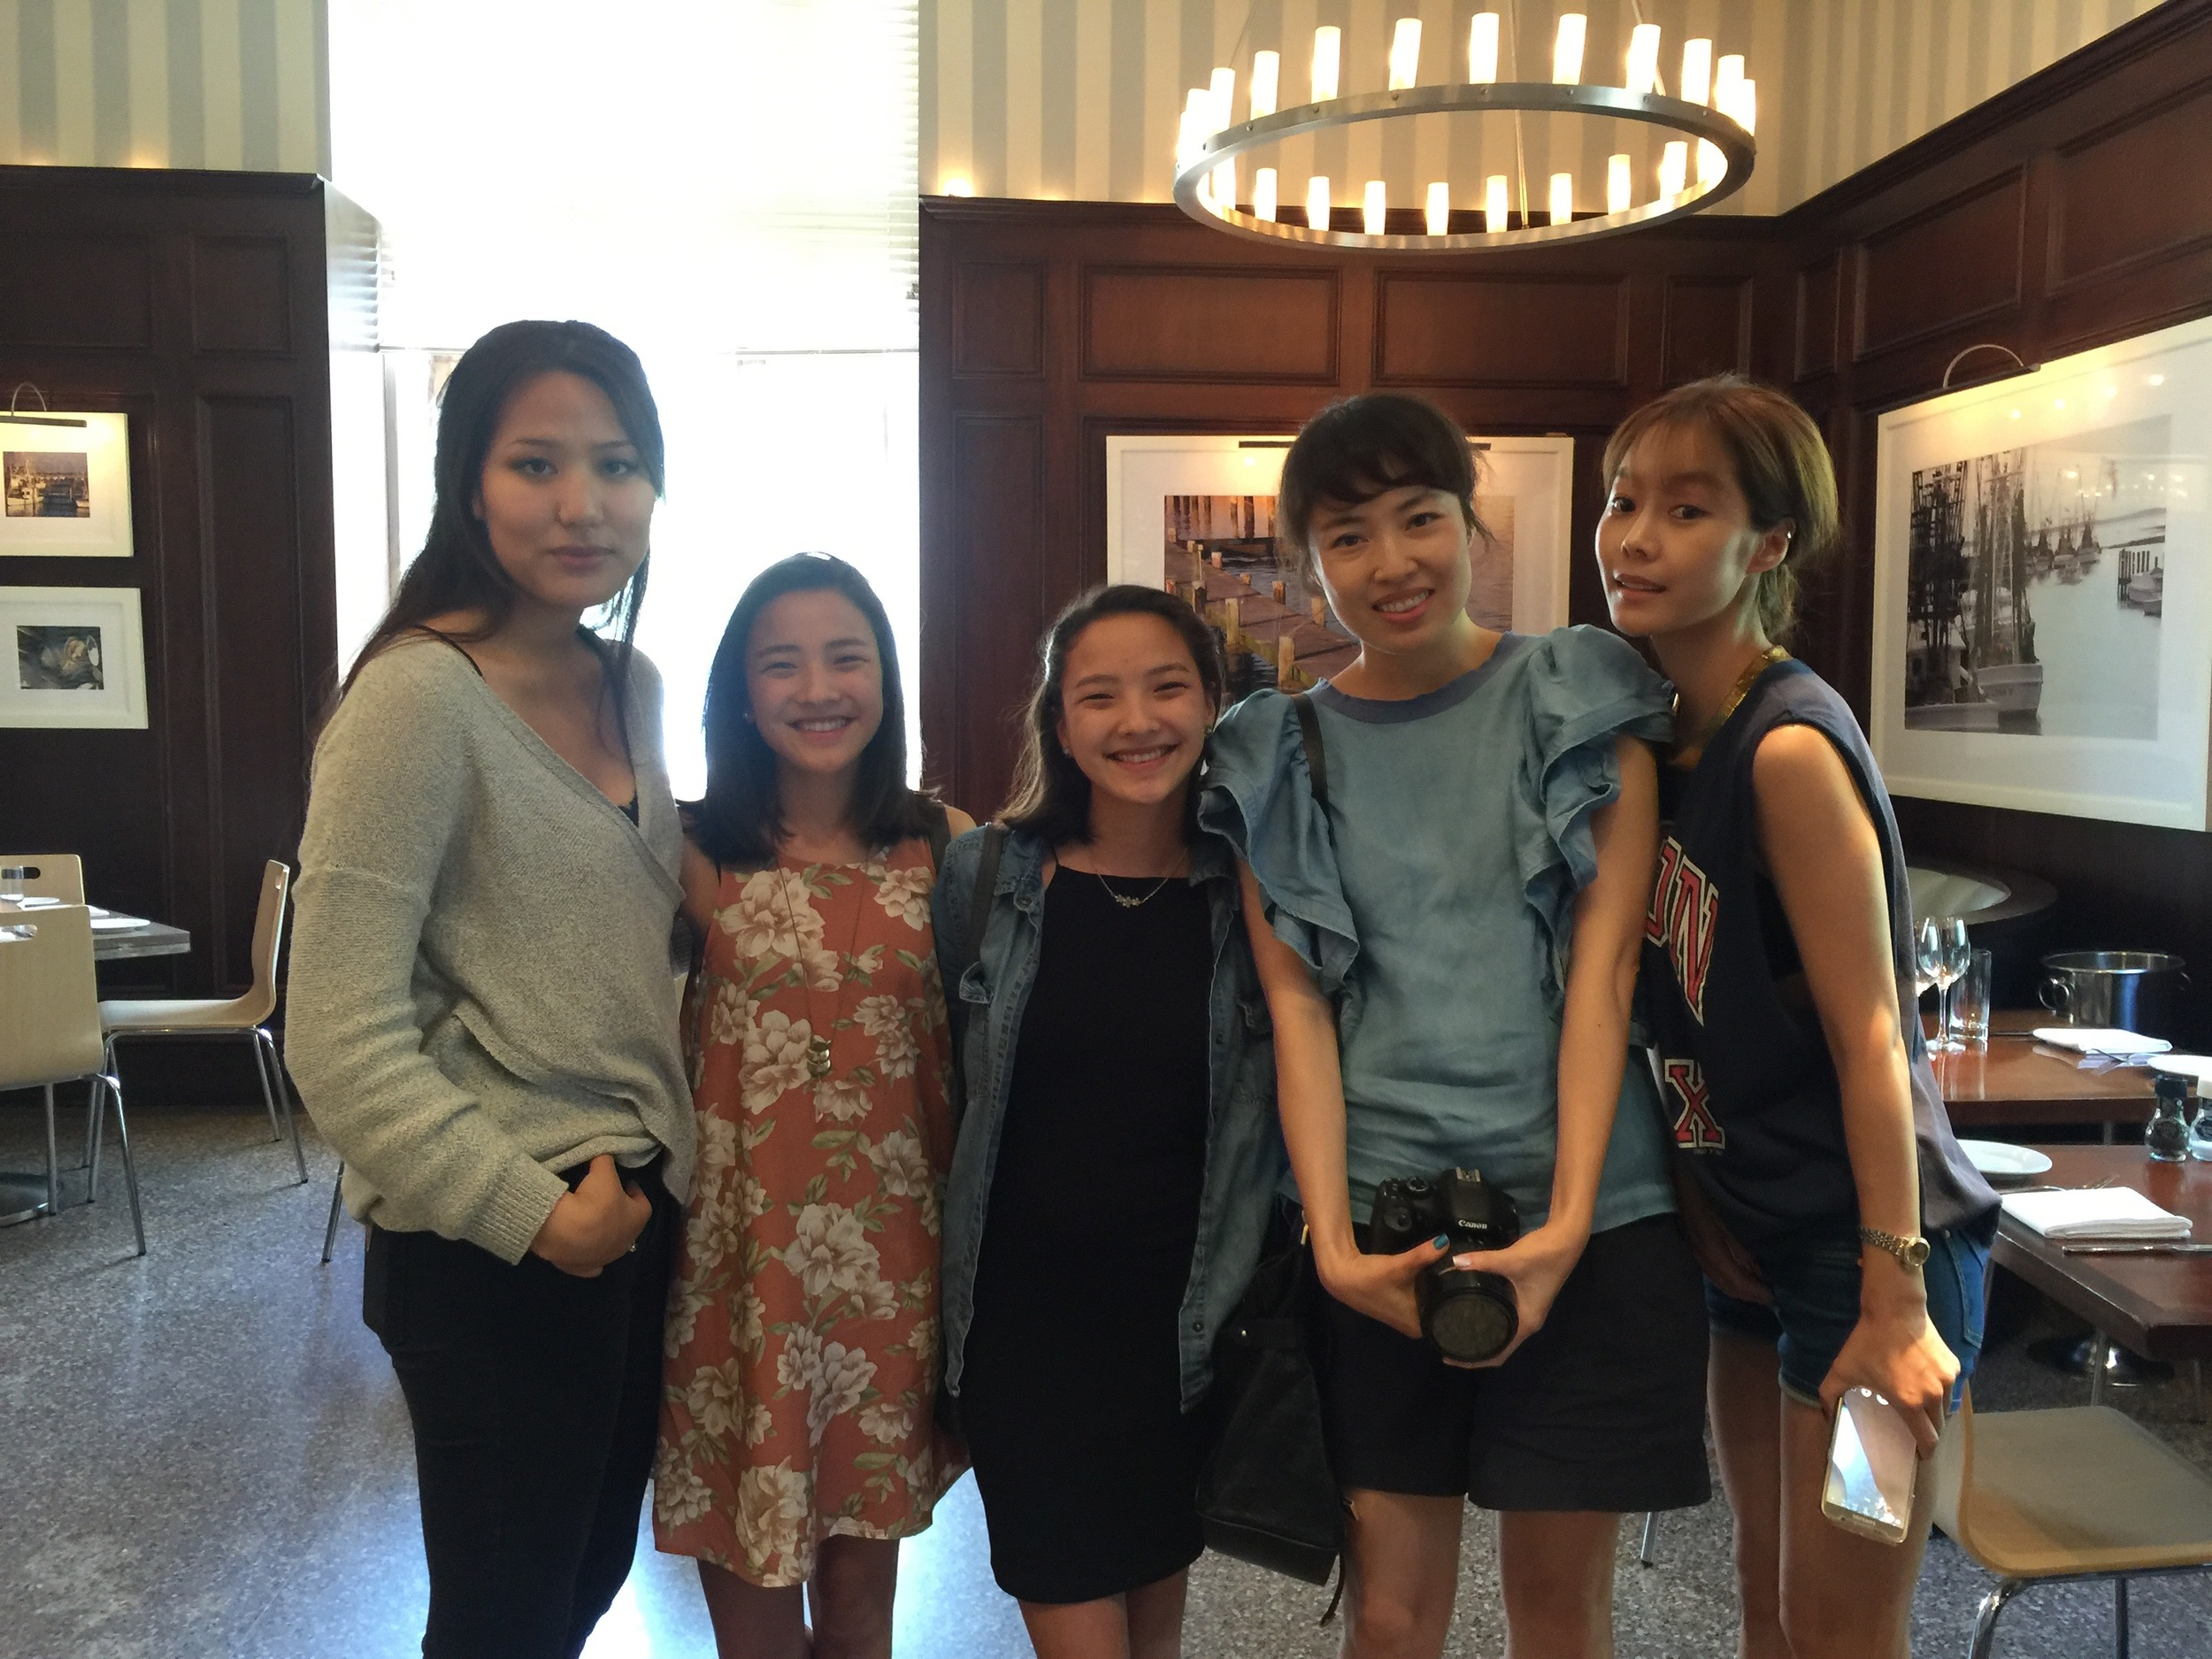 After interviewing actors for KRadio1660, reporter Jeesun Kim (second from right) posed with Rosalina,  Uatachet & Nekhebet, and Sue.